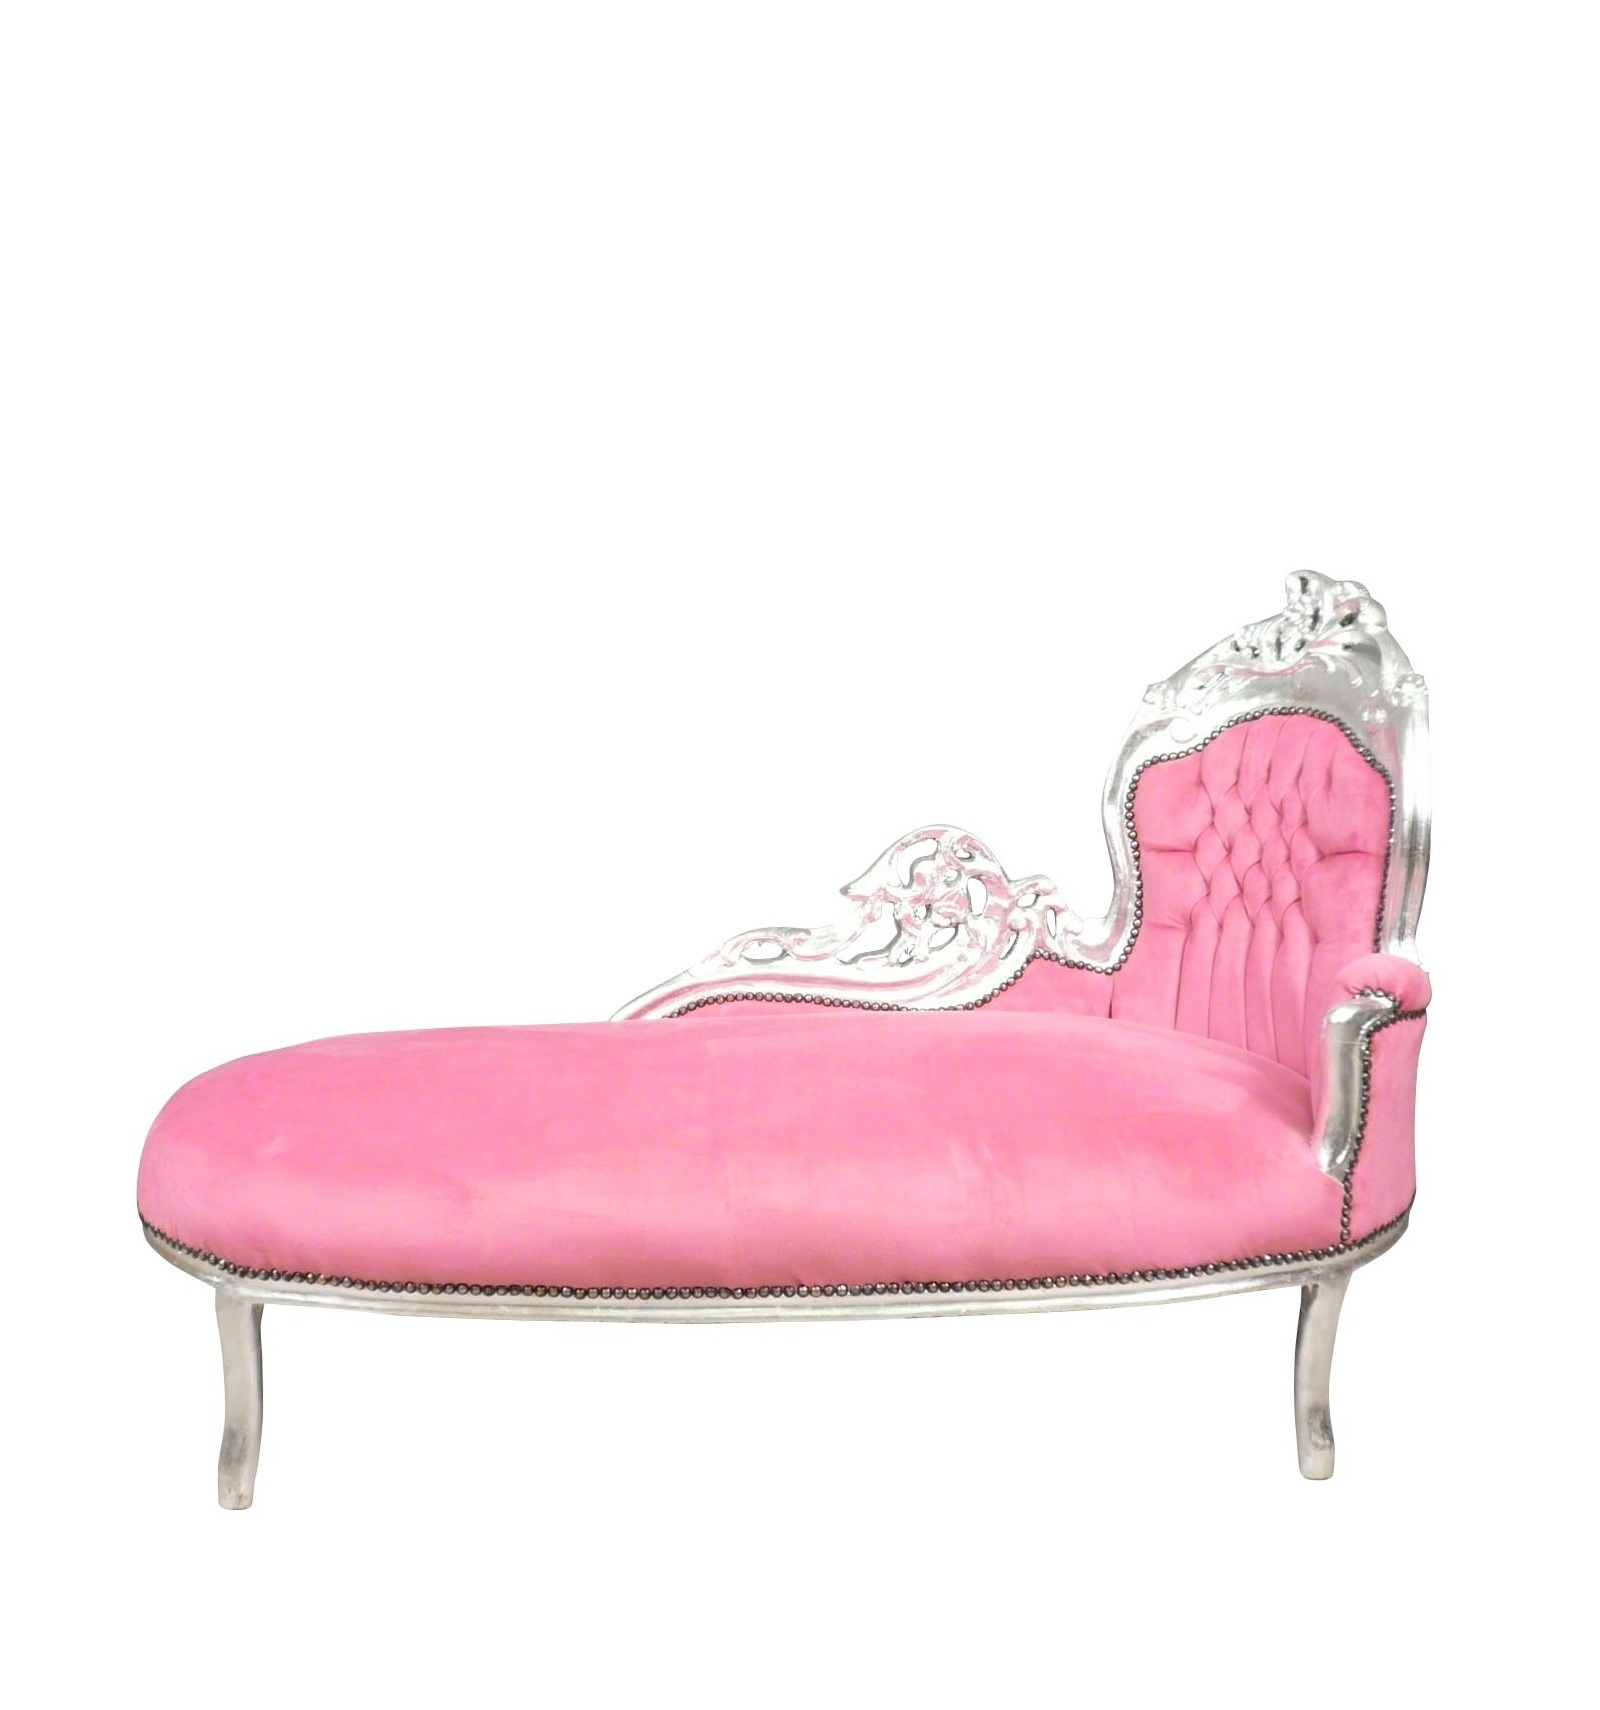 baroque chaise longue pink and silver